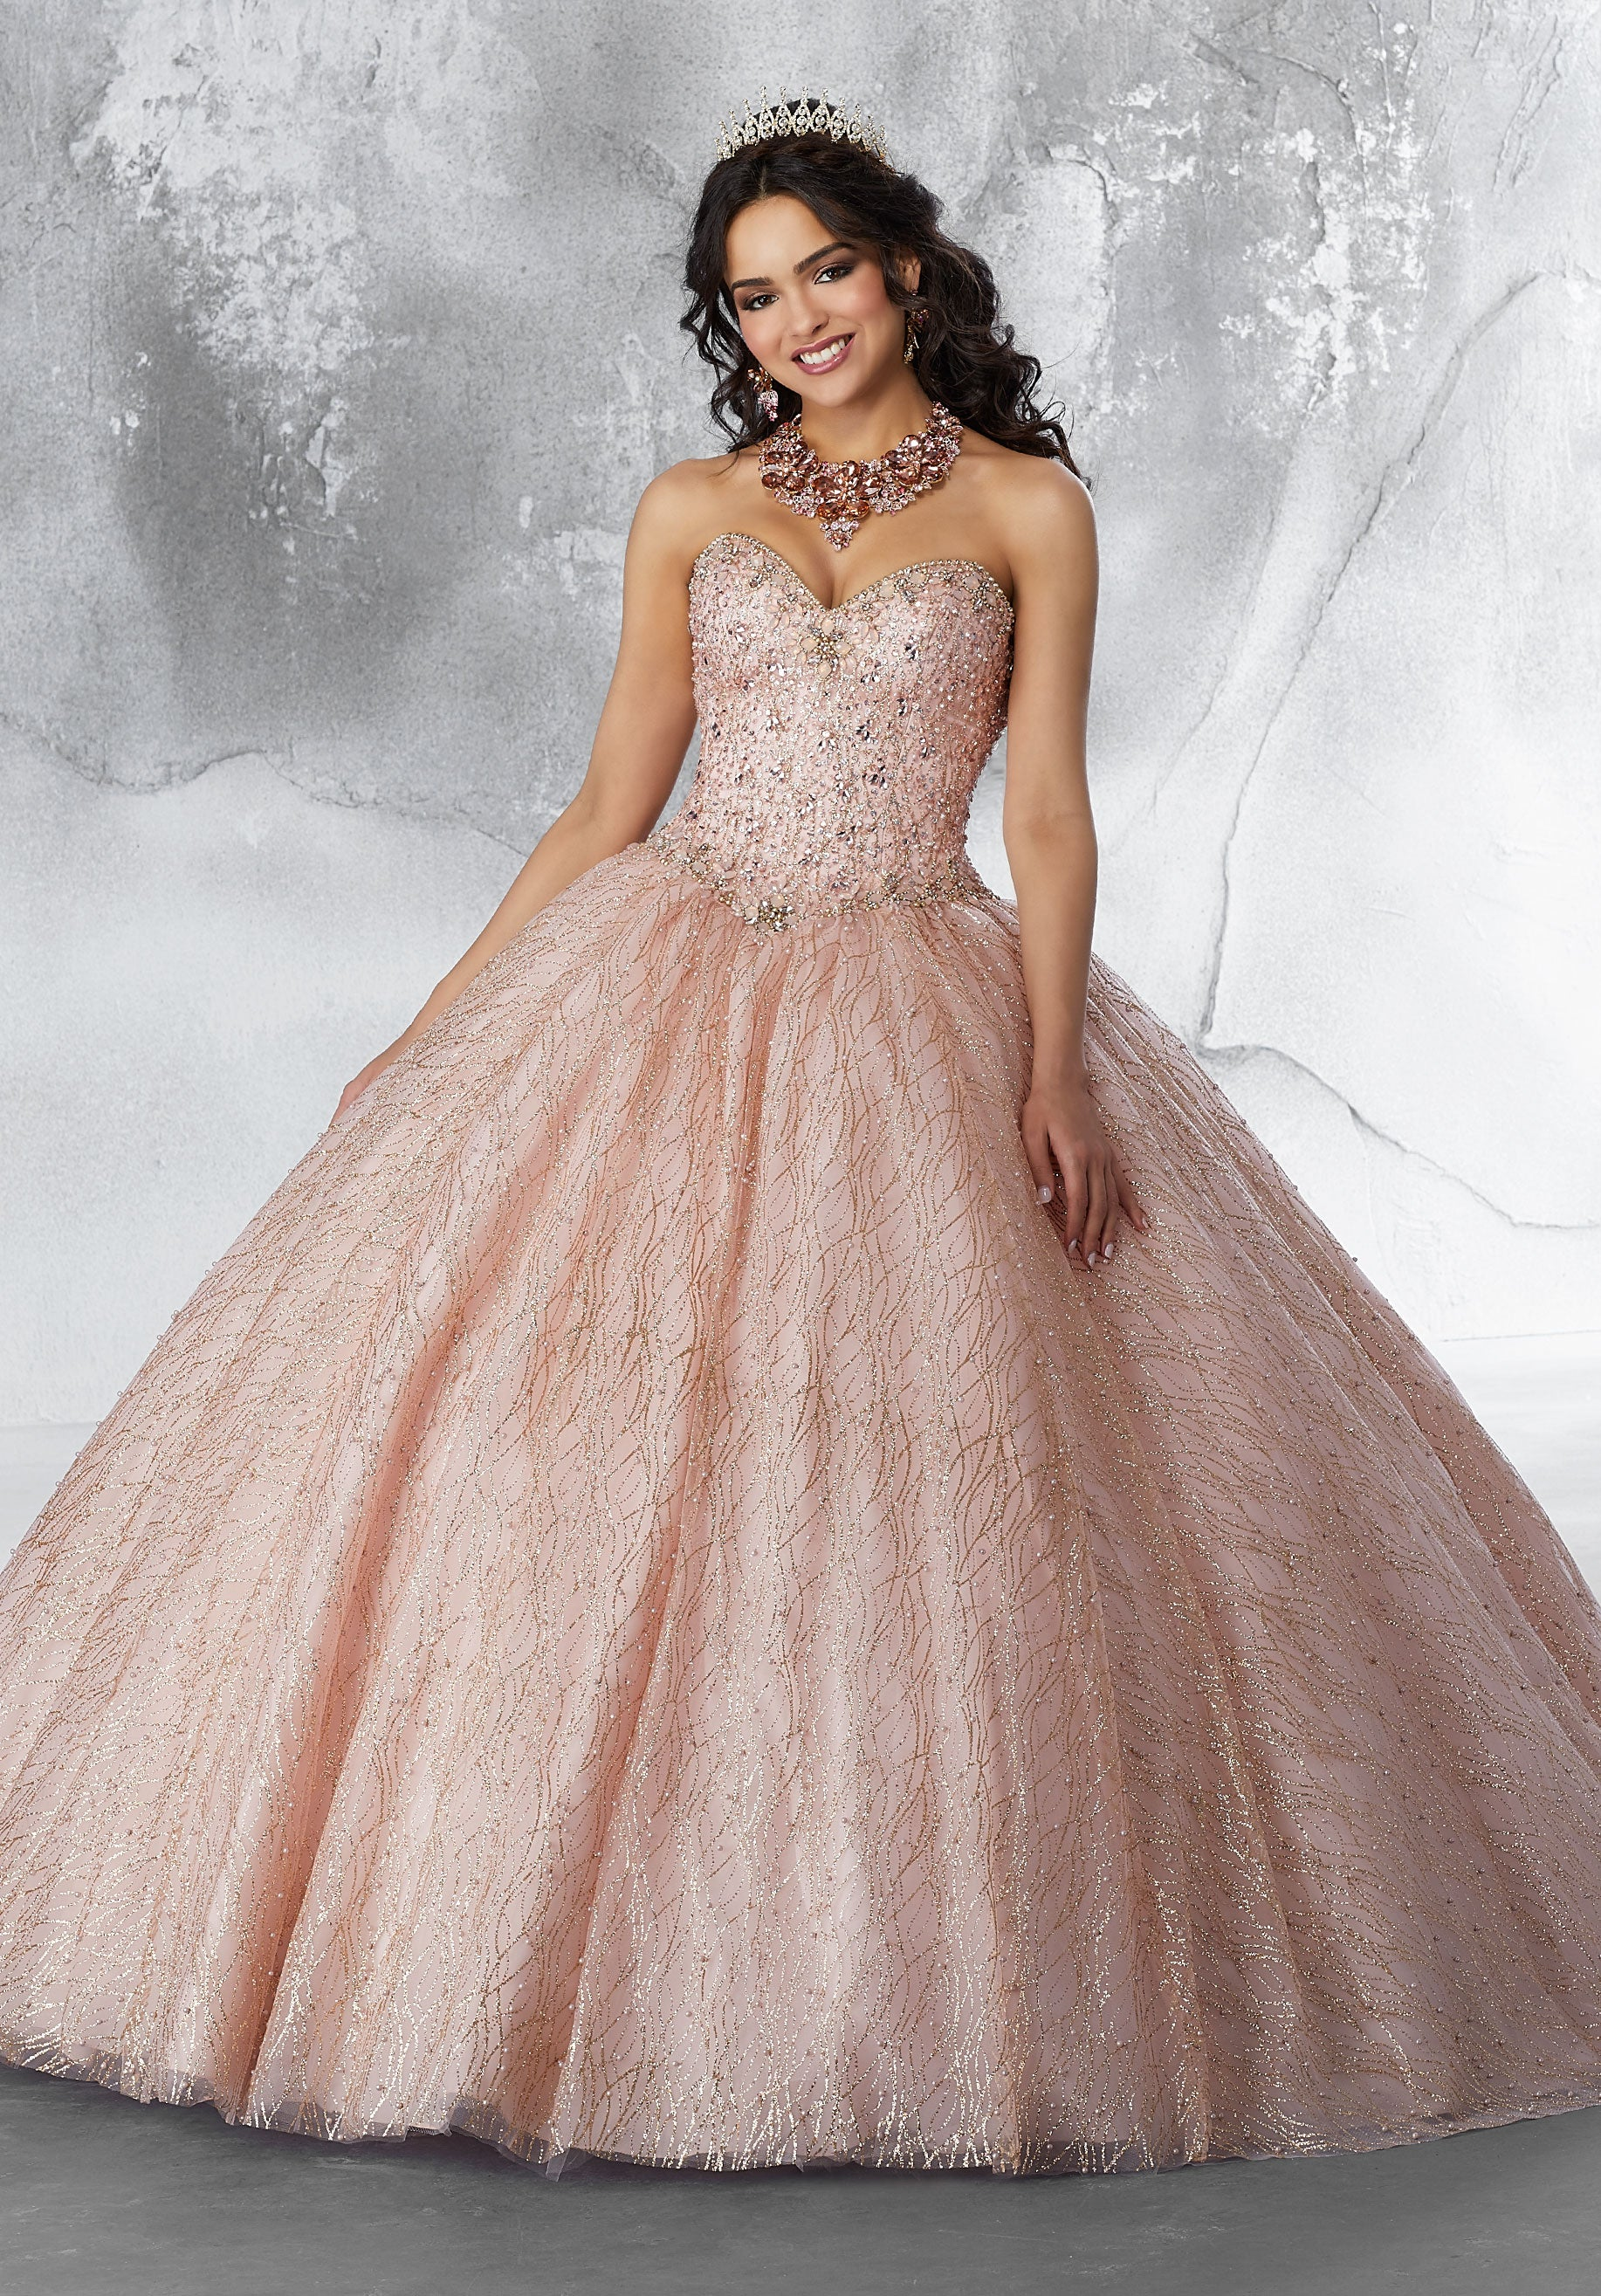 VIZCAYA BY MORI LEE 89199 QUINCEANERA DRESS - QuinceDresses.com